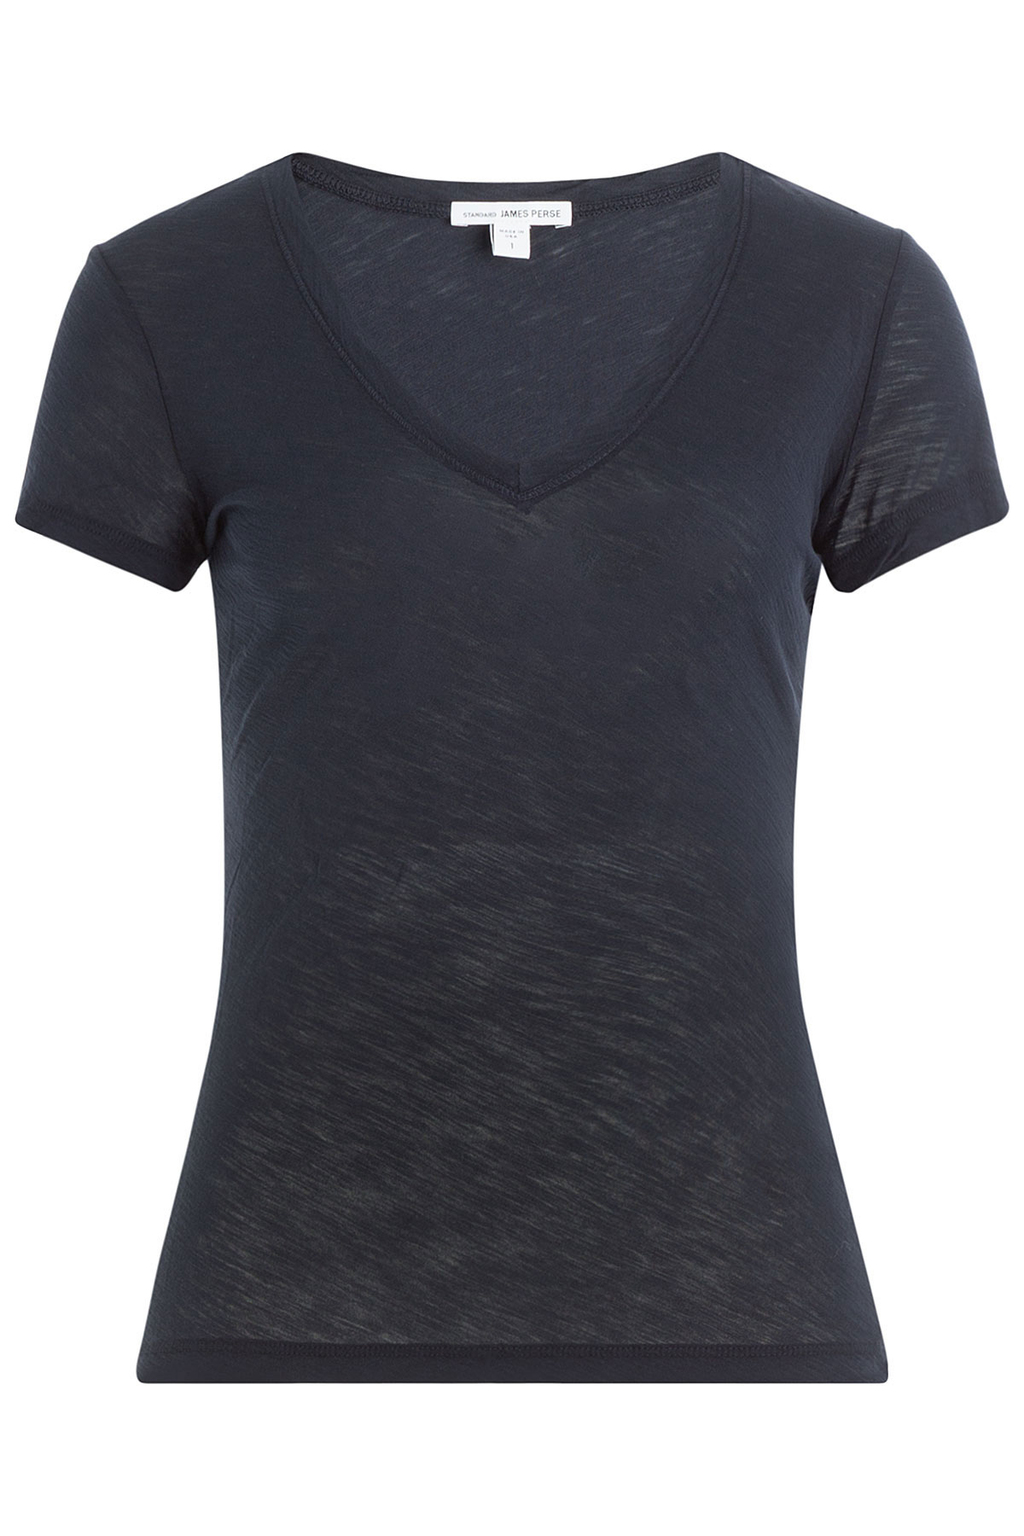 Cotton T Shirt Blue - neckline: v-neck; pattern: plain; style: t-shirt; predominant colour: navy; occasions: casual; length: standard; fibres: cotton - 100%; fit: body skimming; sleeve length: short sleeve; sleeve style: standard; pattern type: fabric; texture group: jersey - stretchy/drapey; wardrobe: basic; season: a/w 2016